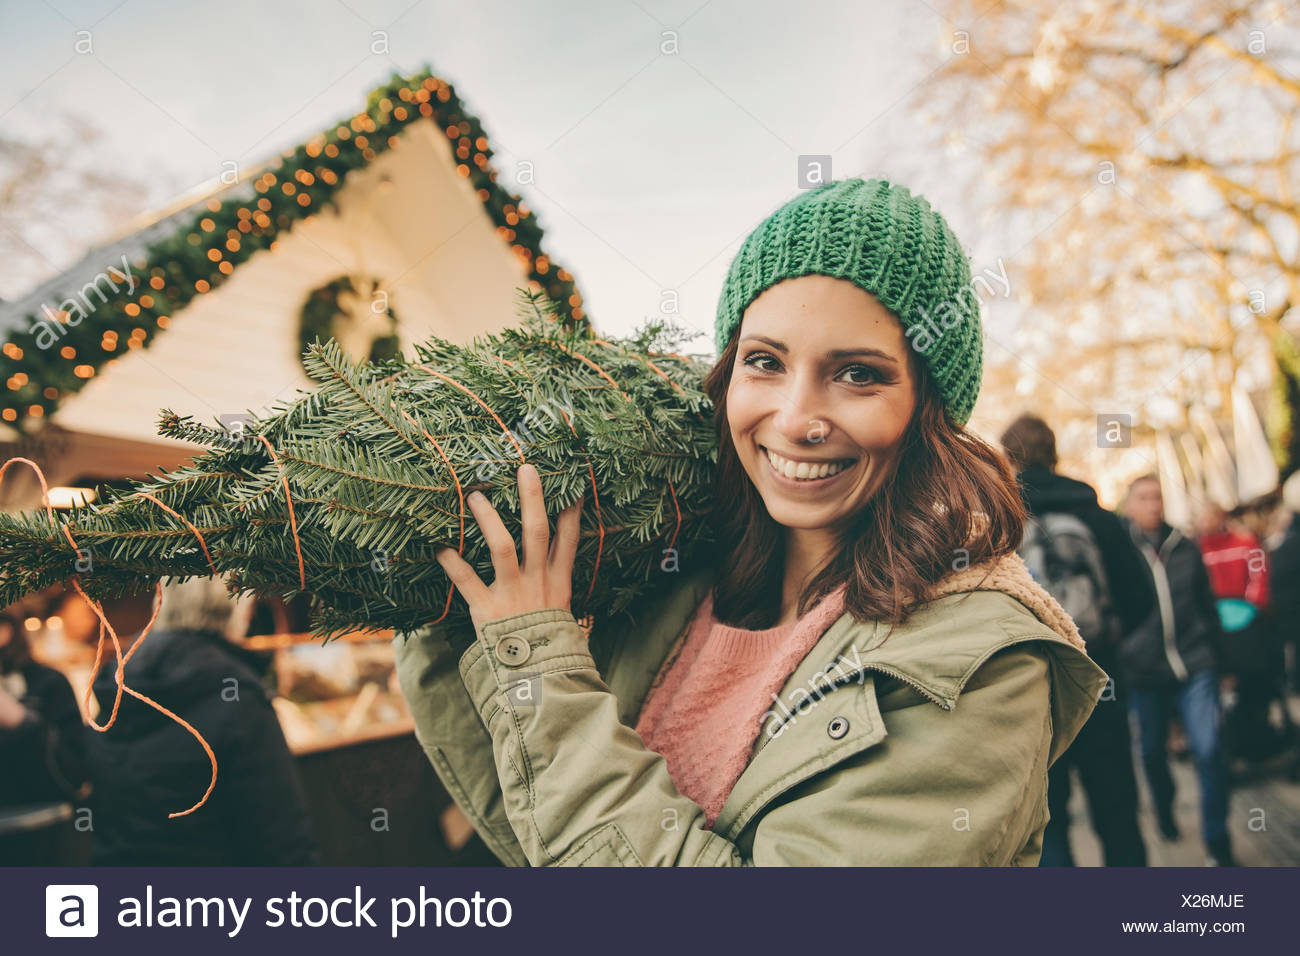 Happy woman with a wrapped-up tree walking over the Christmas Market - Stock Image